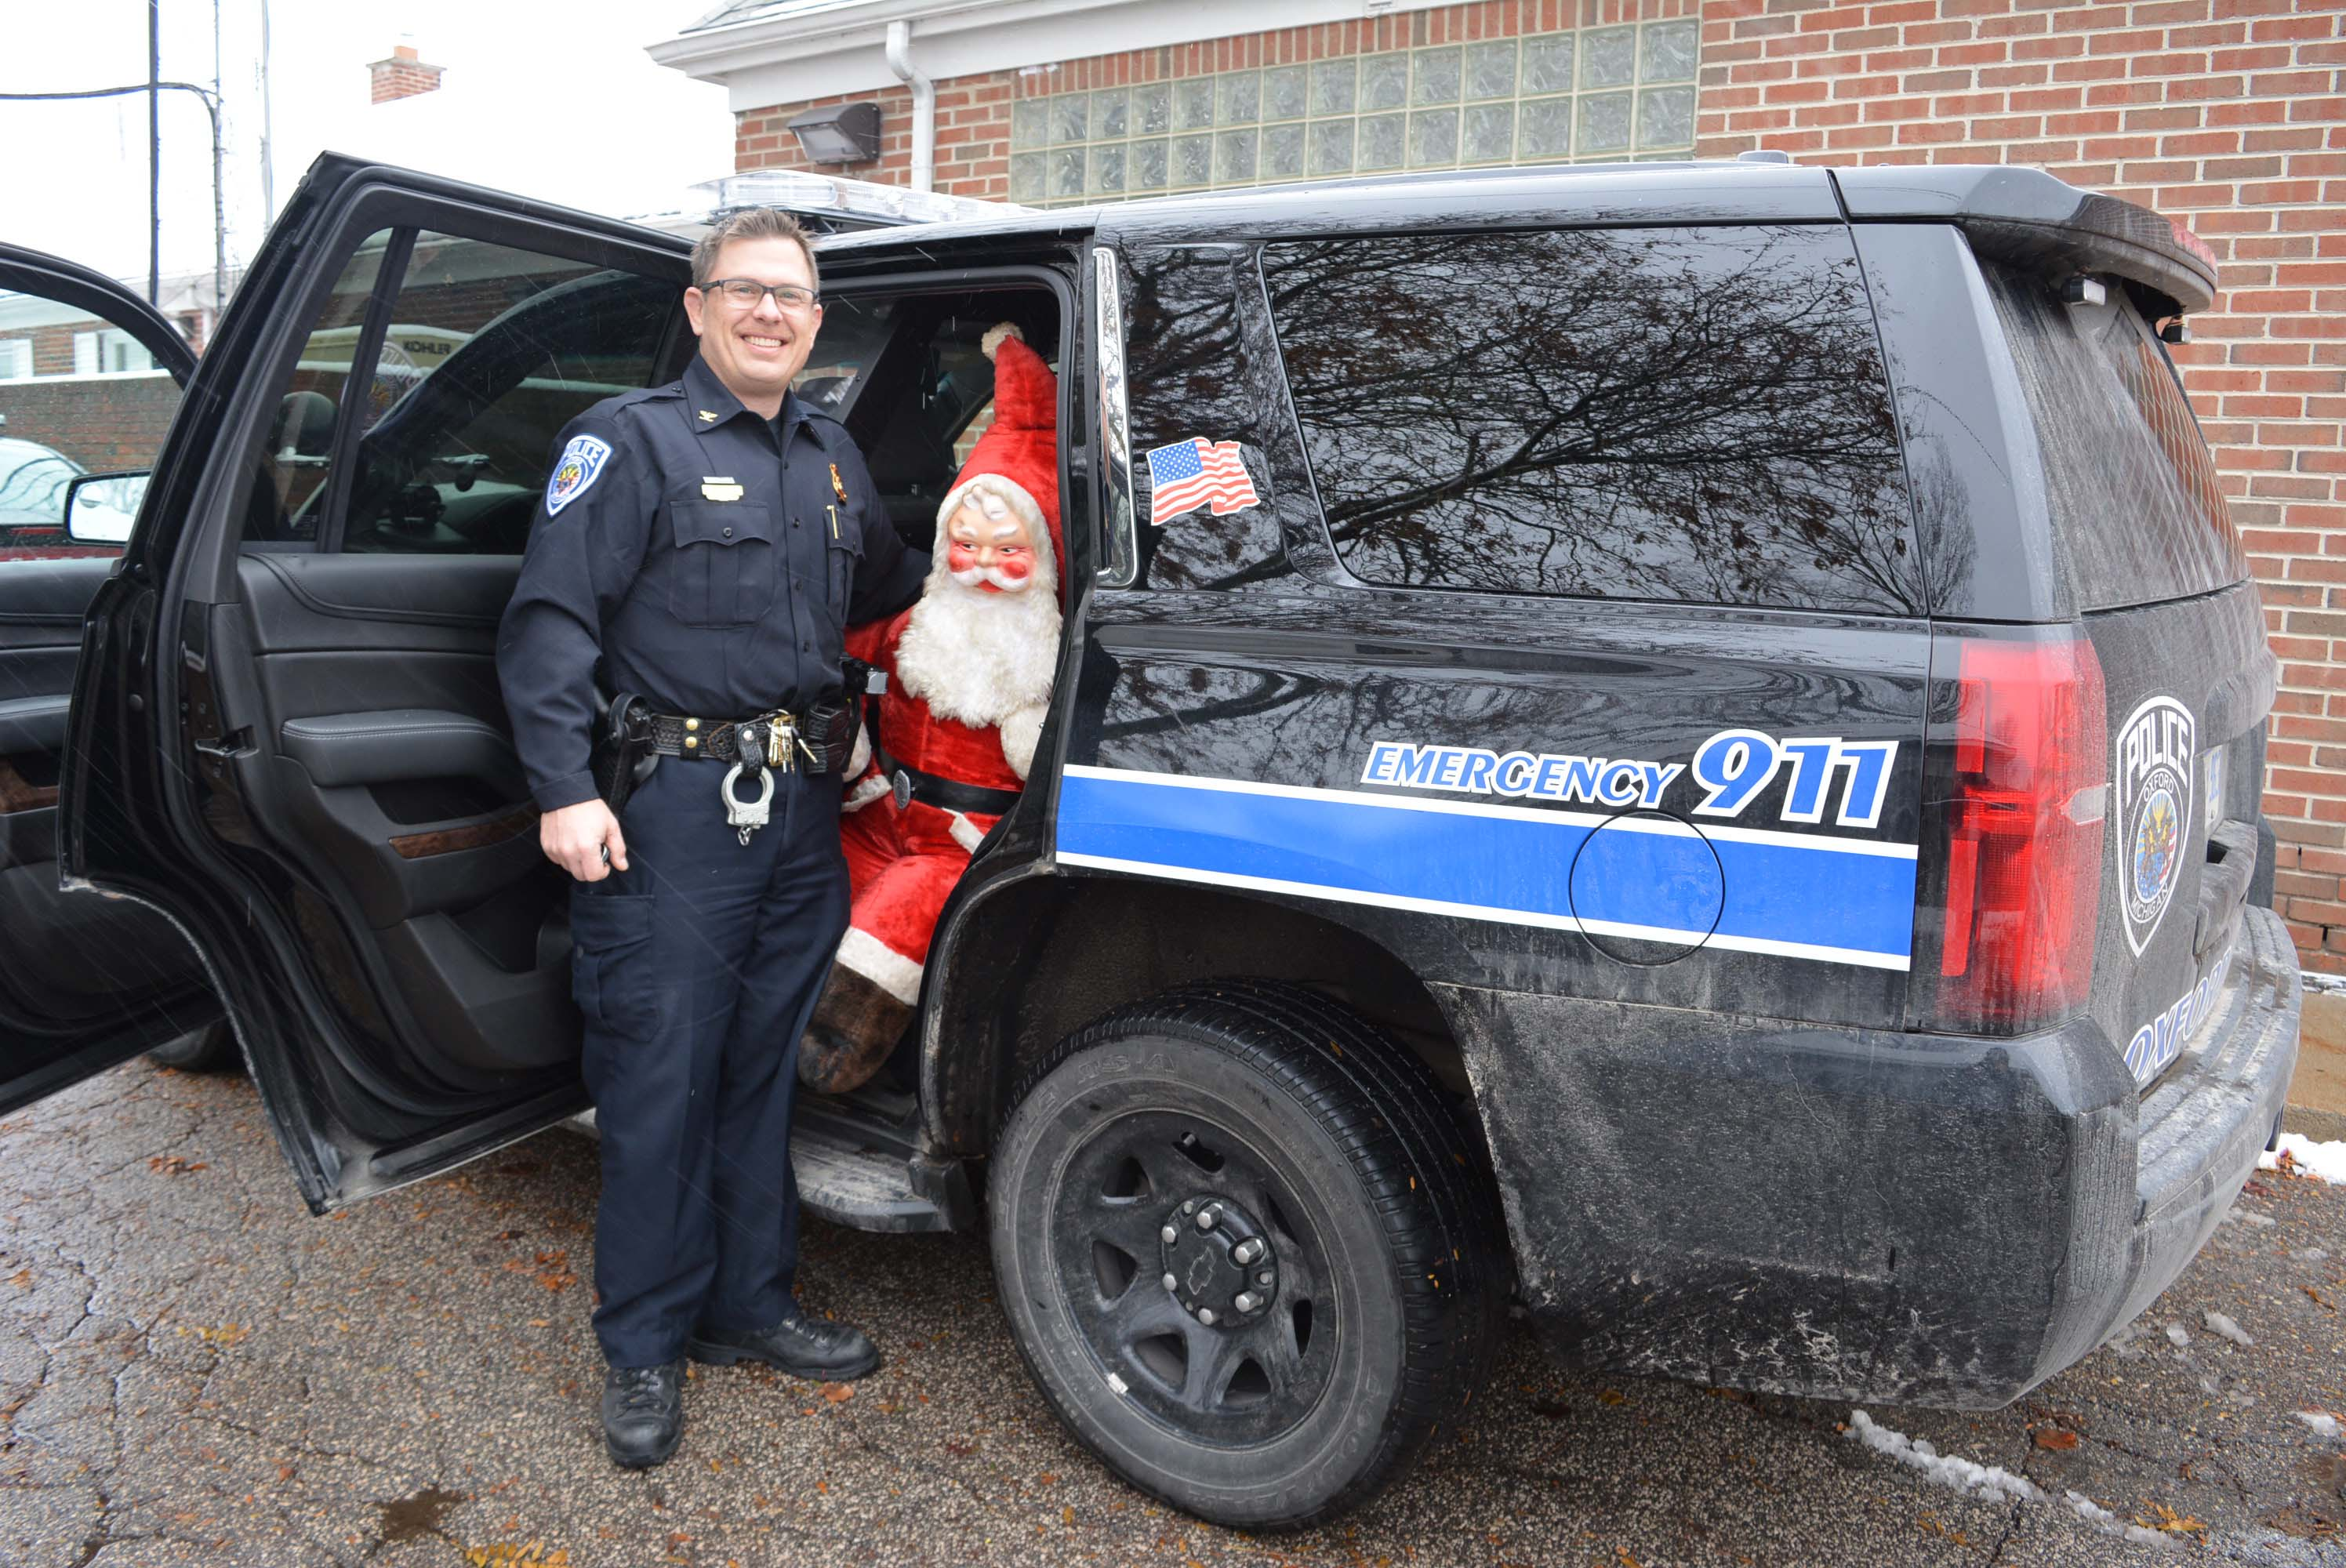 Oxford Village Police Chief Mike Solwold, a close personal friend of Santa Claus, is hoping to see his agency's Chevy Tahoe overflowing with toys on Saturday. Photo by C.J. Carnacchio.